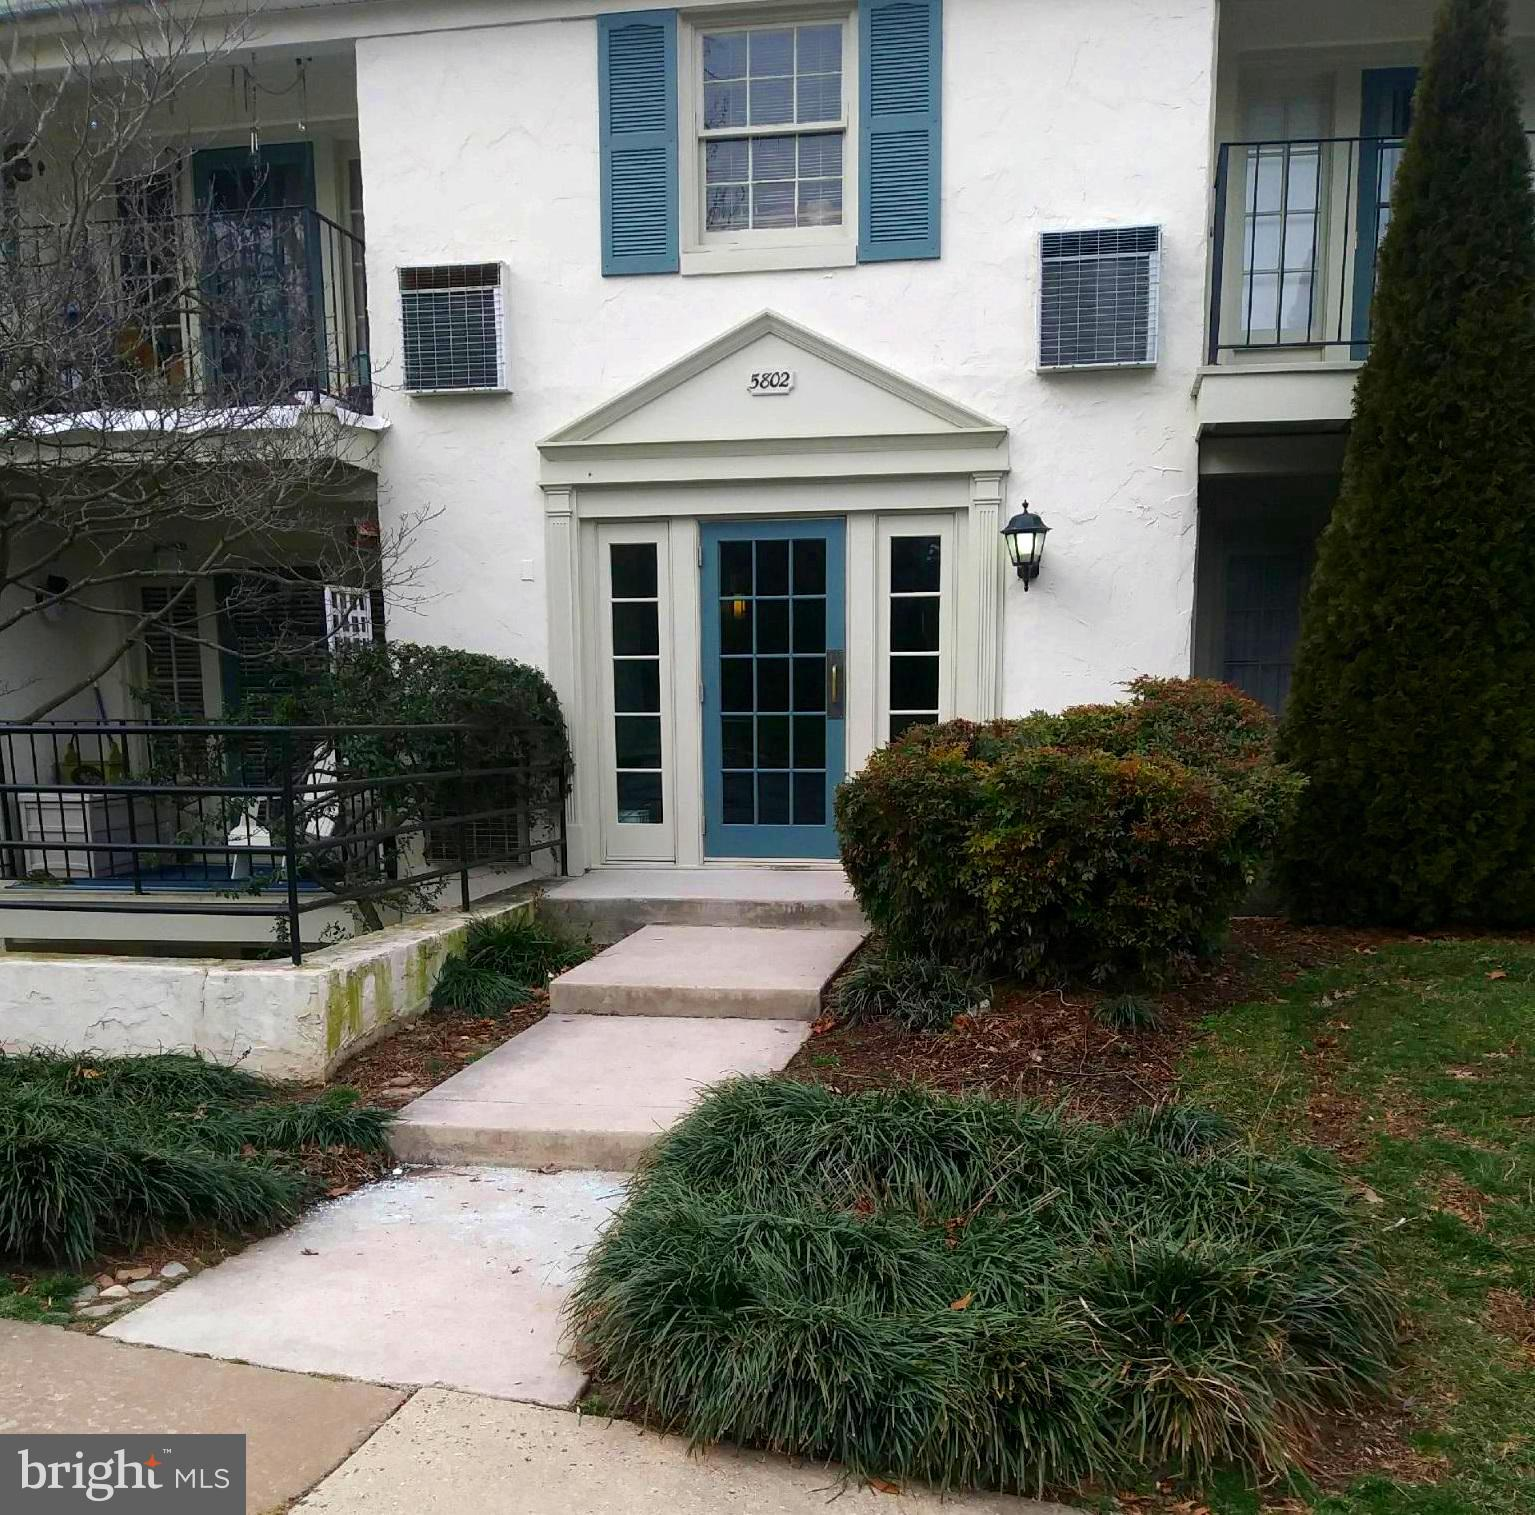 2 Bed ,1.5 Bath Condo in much sort after, Cardinal Forest in Springfield. Fully carpeted. washer dryer, Central Gas Heat pump/air conditioner, 3 remote operated ceiling fans. pantry closet, Kitchen with all oak cabinets Refrigerator, Cooking range with oven and hood, Dishwasher, microwave oven, hot water heater. Master bedroom has huge closet. Access to private walled-in yard. Condo Fees $ 284.00/month includes all utilities (except Electric),Community use of 2 swimming pools, 2 playgrounds/parks and tennis courts, Assigned parking.